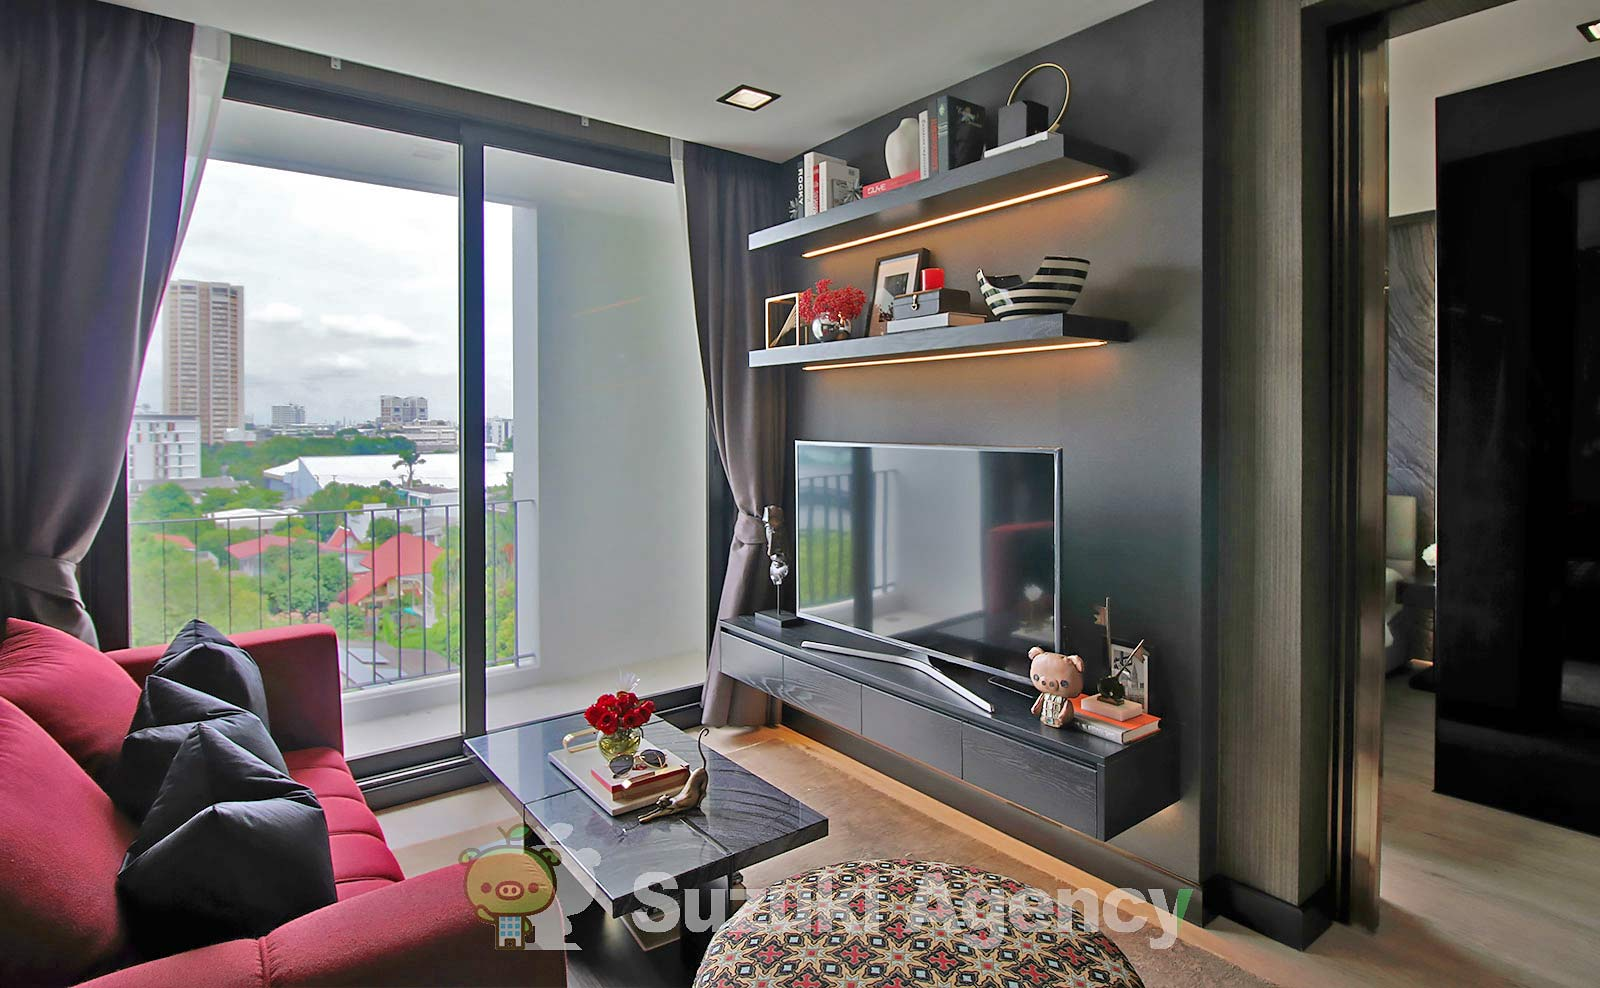 Silver Thonglor Apartment:1Bed Room Photos No.2